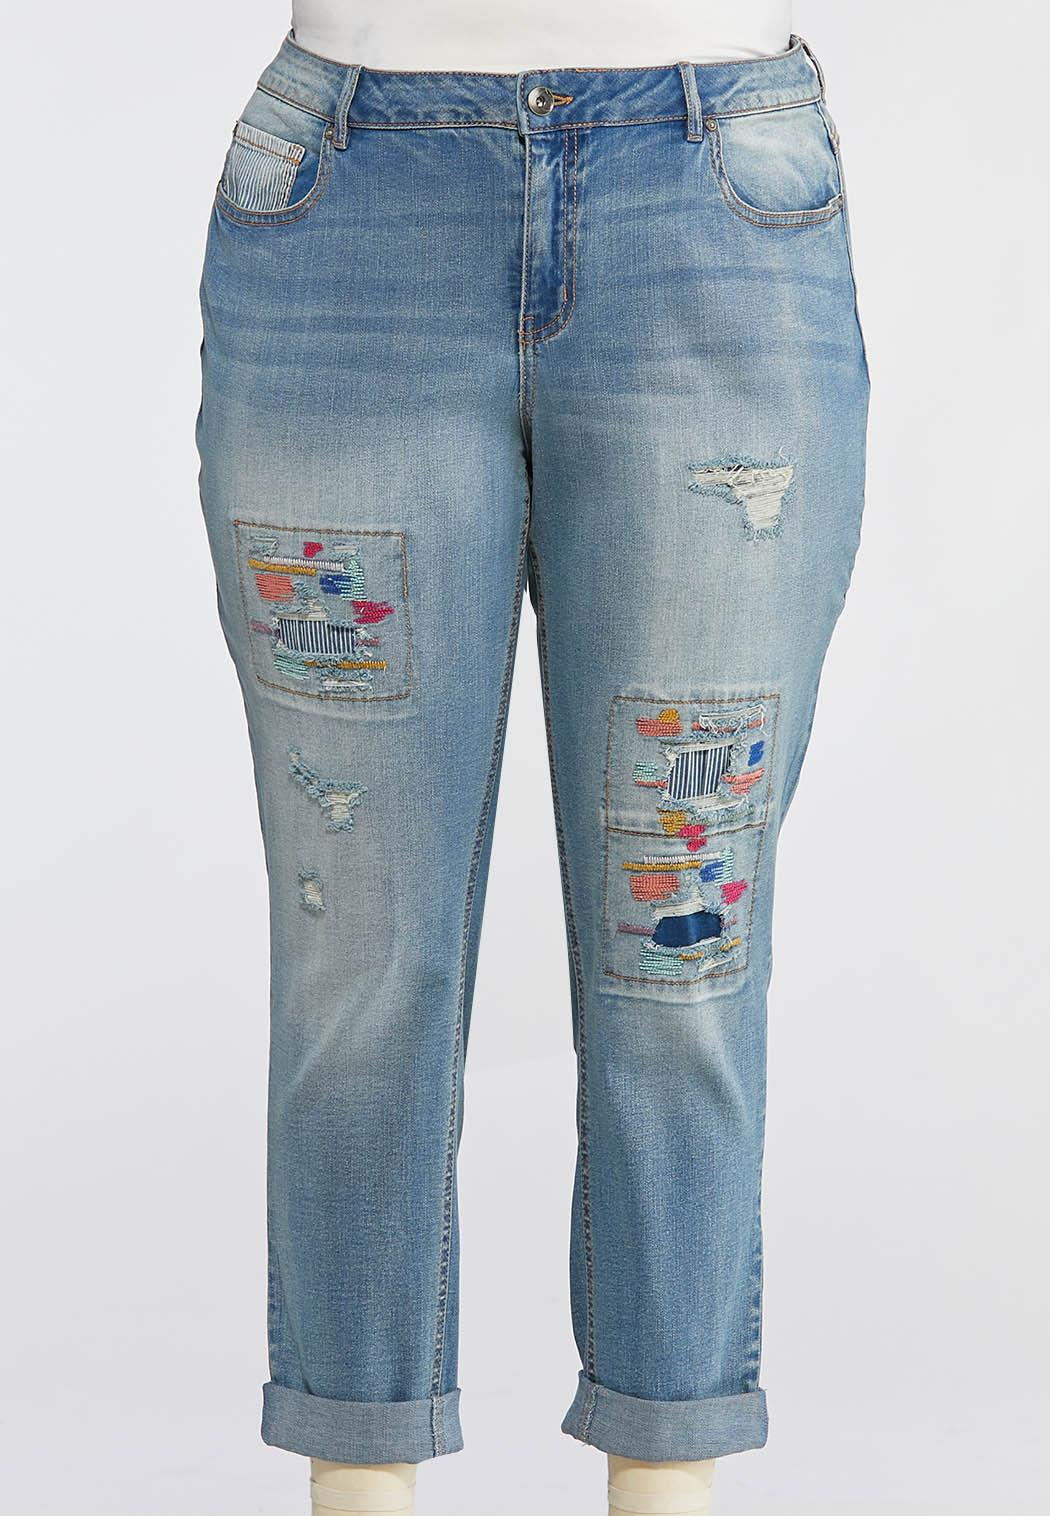 d1fef5c6fd0 Plus Size Distressed Colorful Stitch Jeans Ankle Pants Cato Fashions